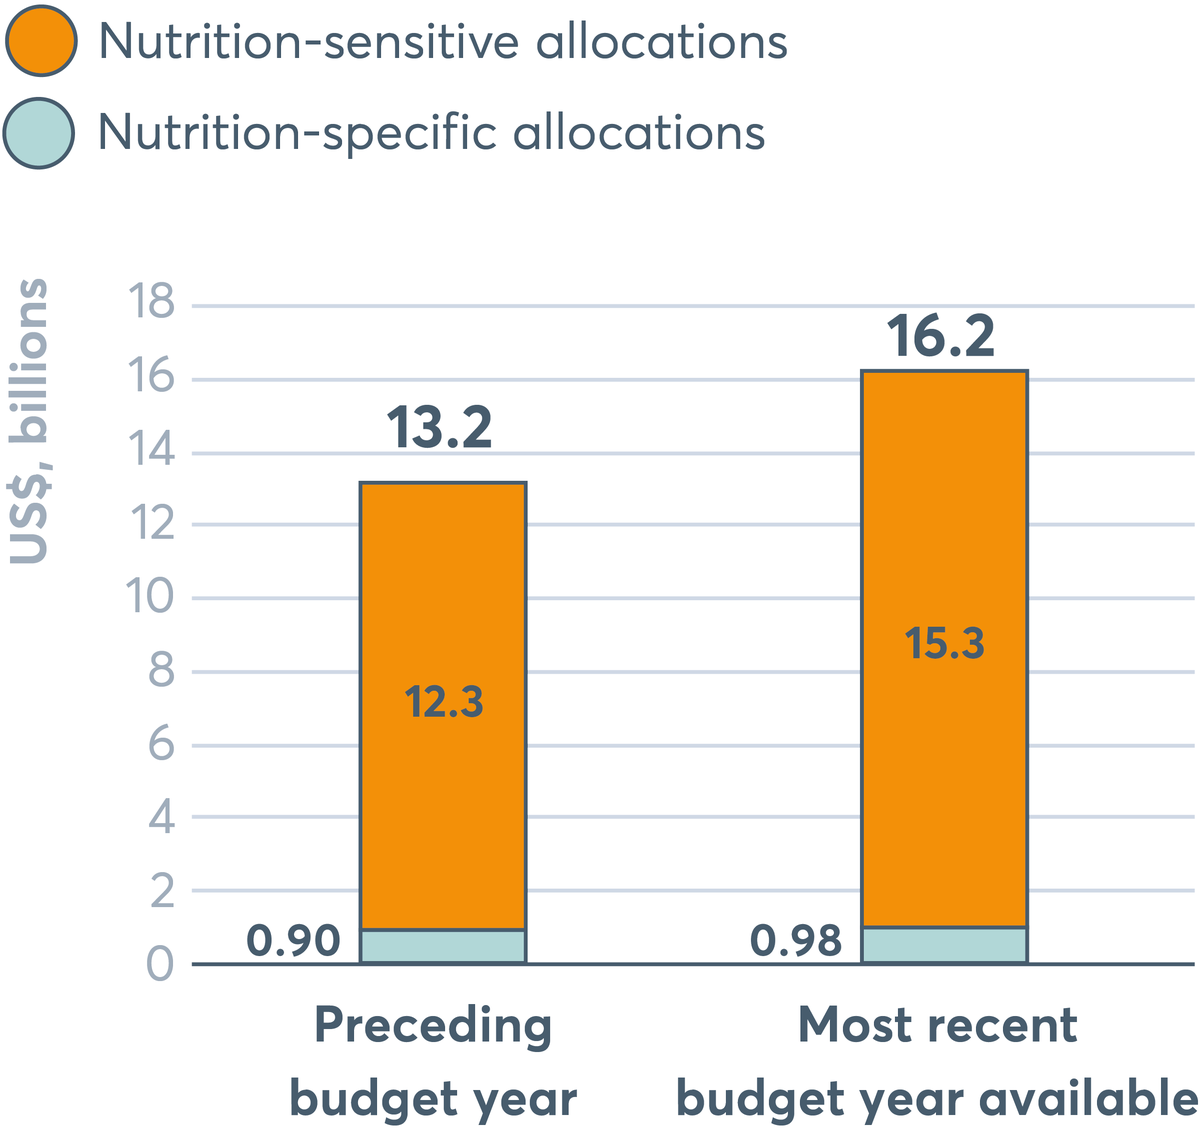 FIGURE 5.1 Domestic spending: Changes in total nutrition-specific and sensitive spending over 25 countries' previous two budget years